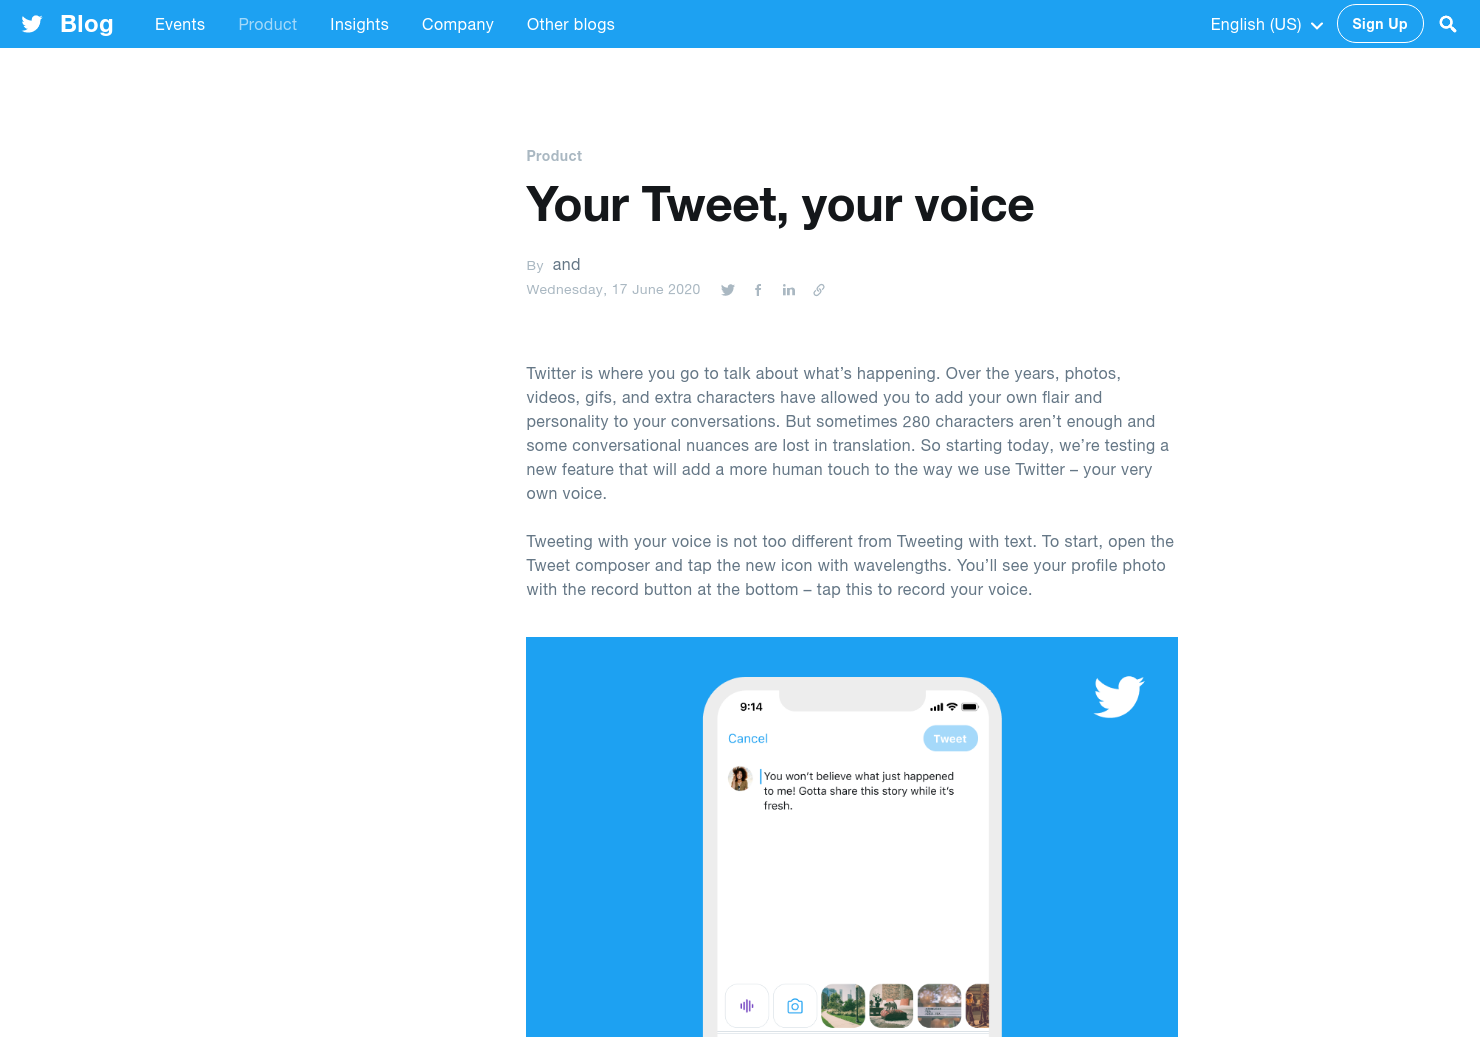 Tweet Your Voice